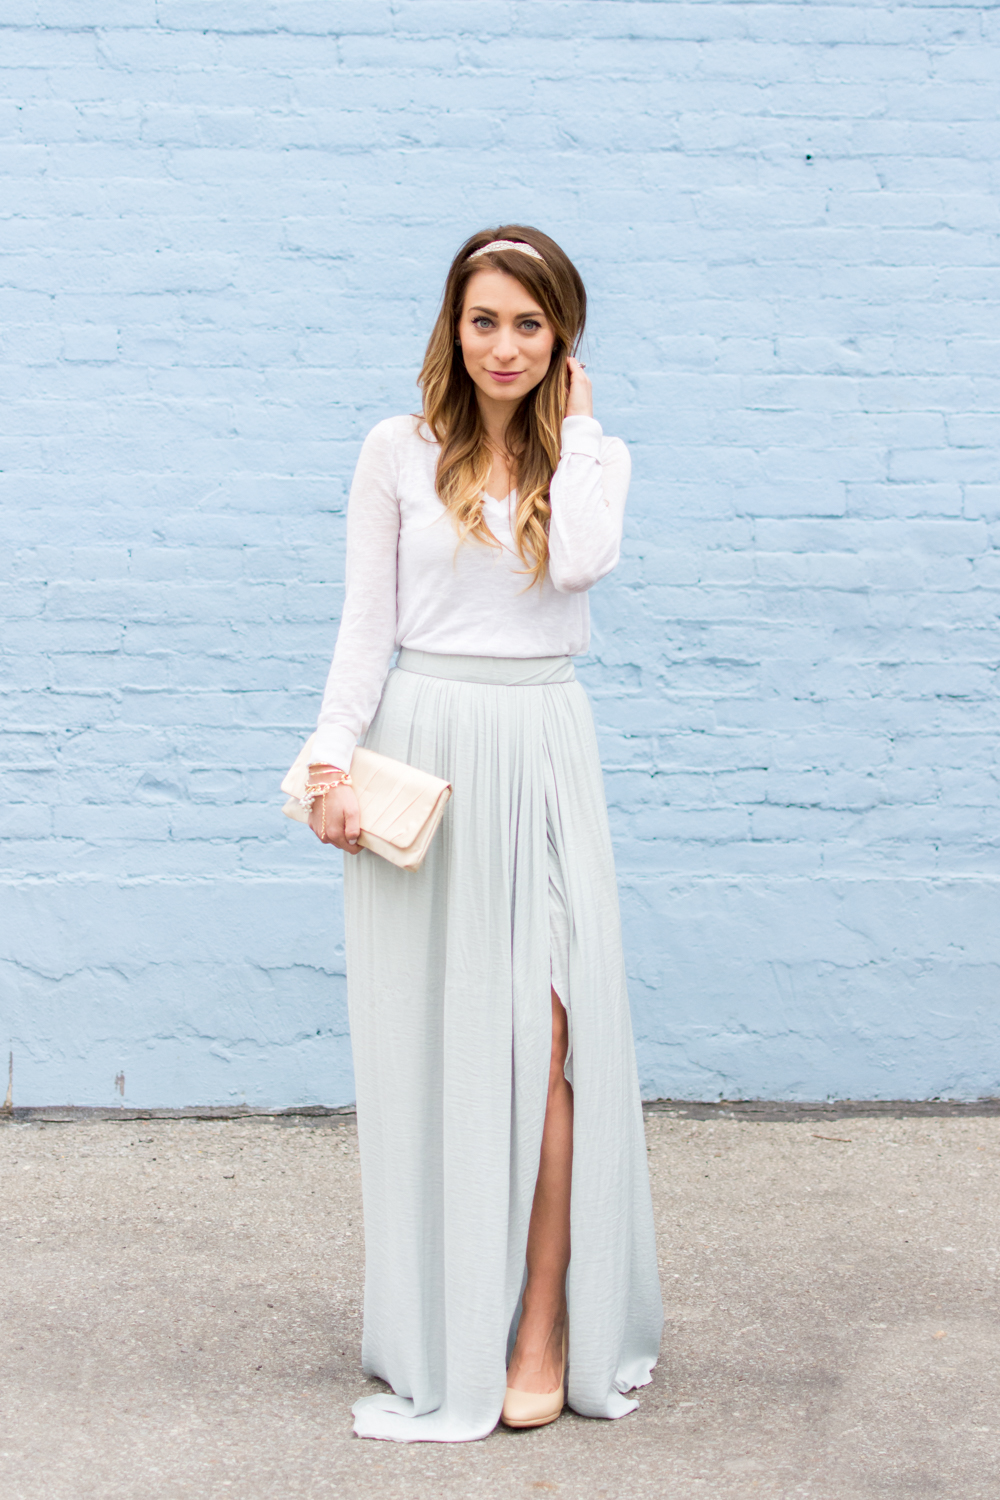 ootd blue maxi skirt in winter la petite noob a